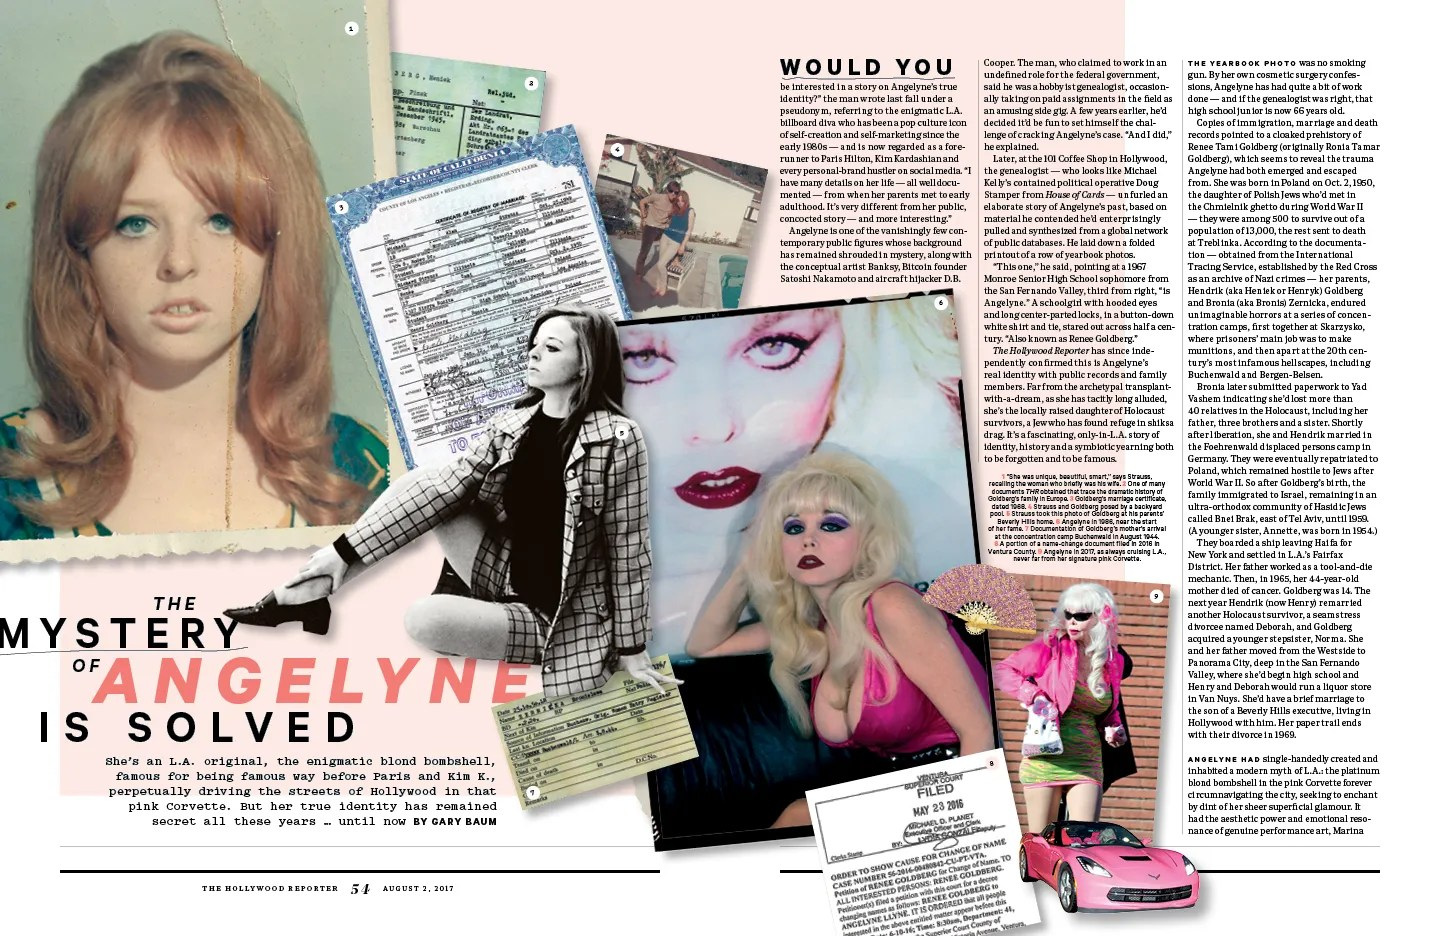 The Mystery of Angelyne is Solved / The Hollywood Reporter / 8.2.17 / kelsey stefanson / art direction + graphic design / yeskelsey.com